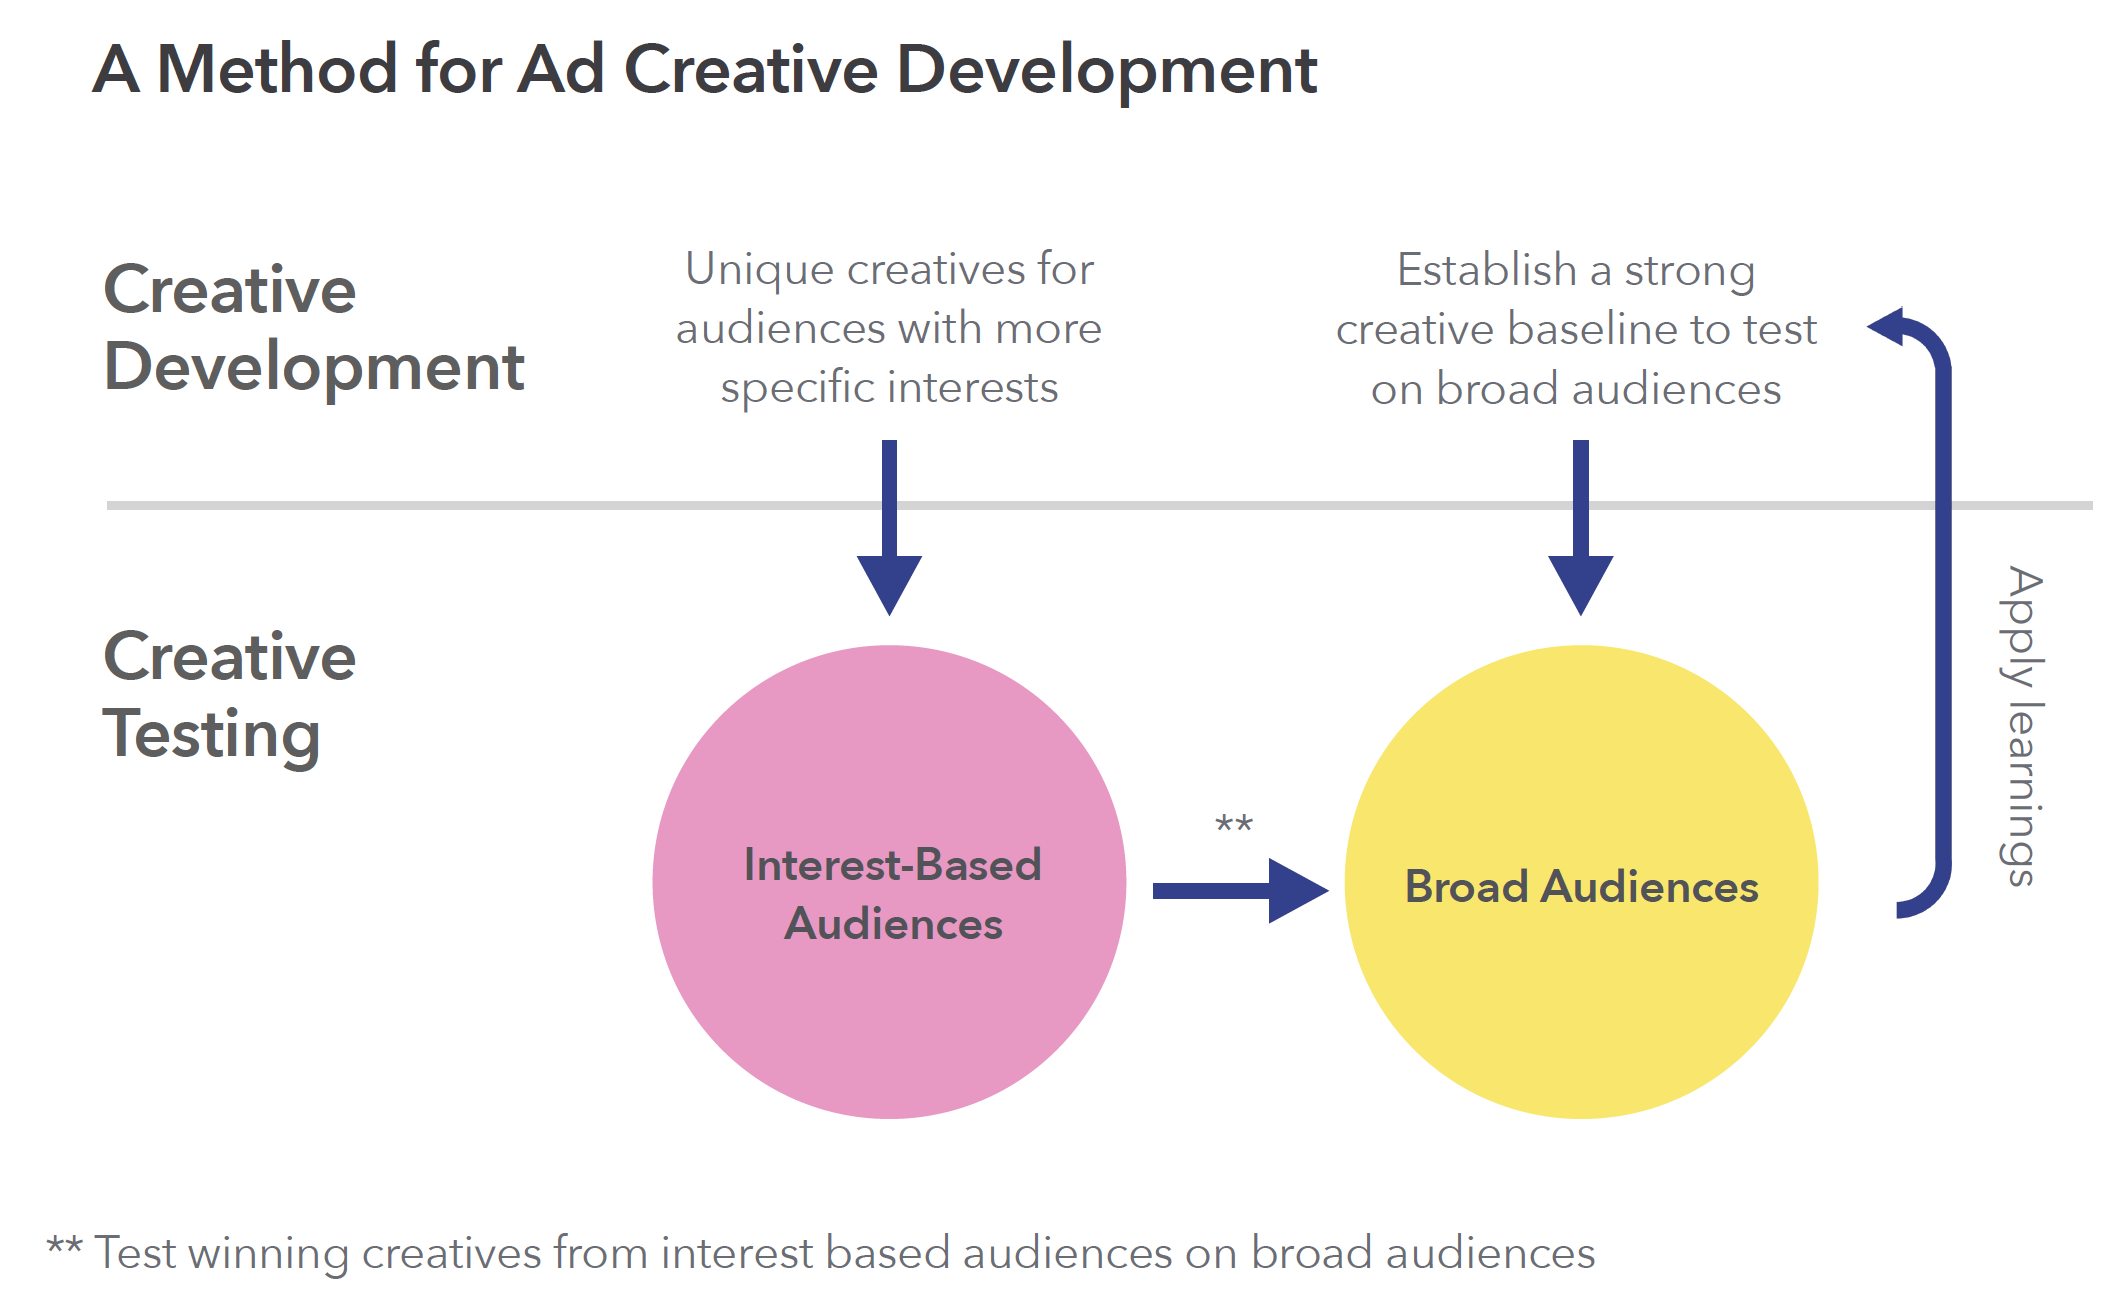 A Method for Ad Creative Development